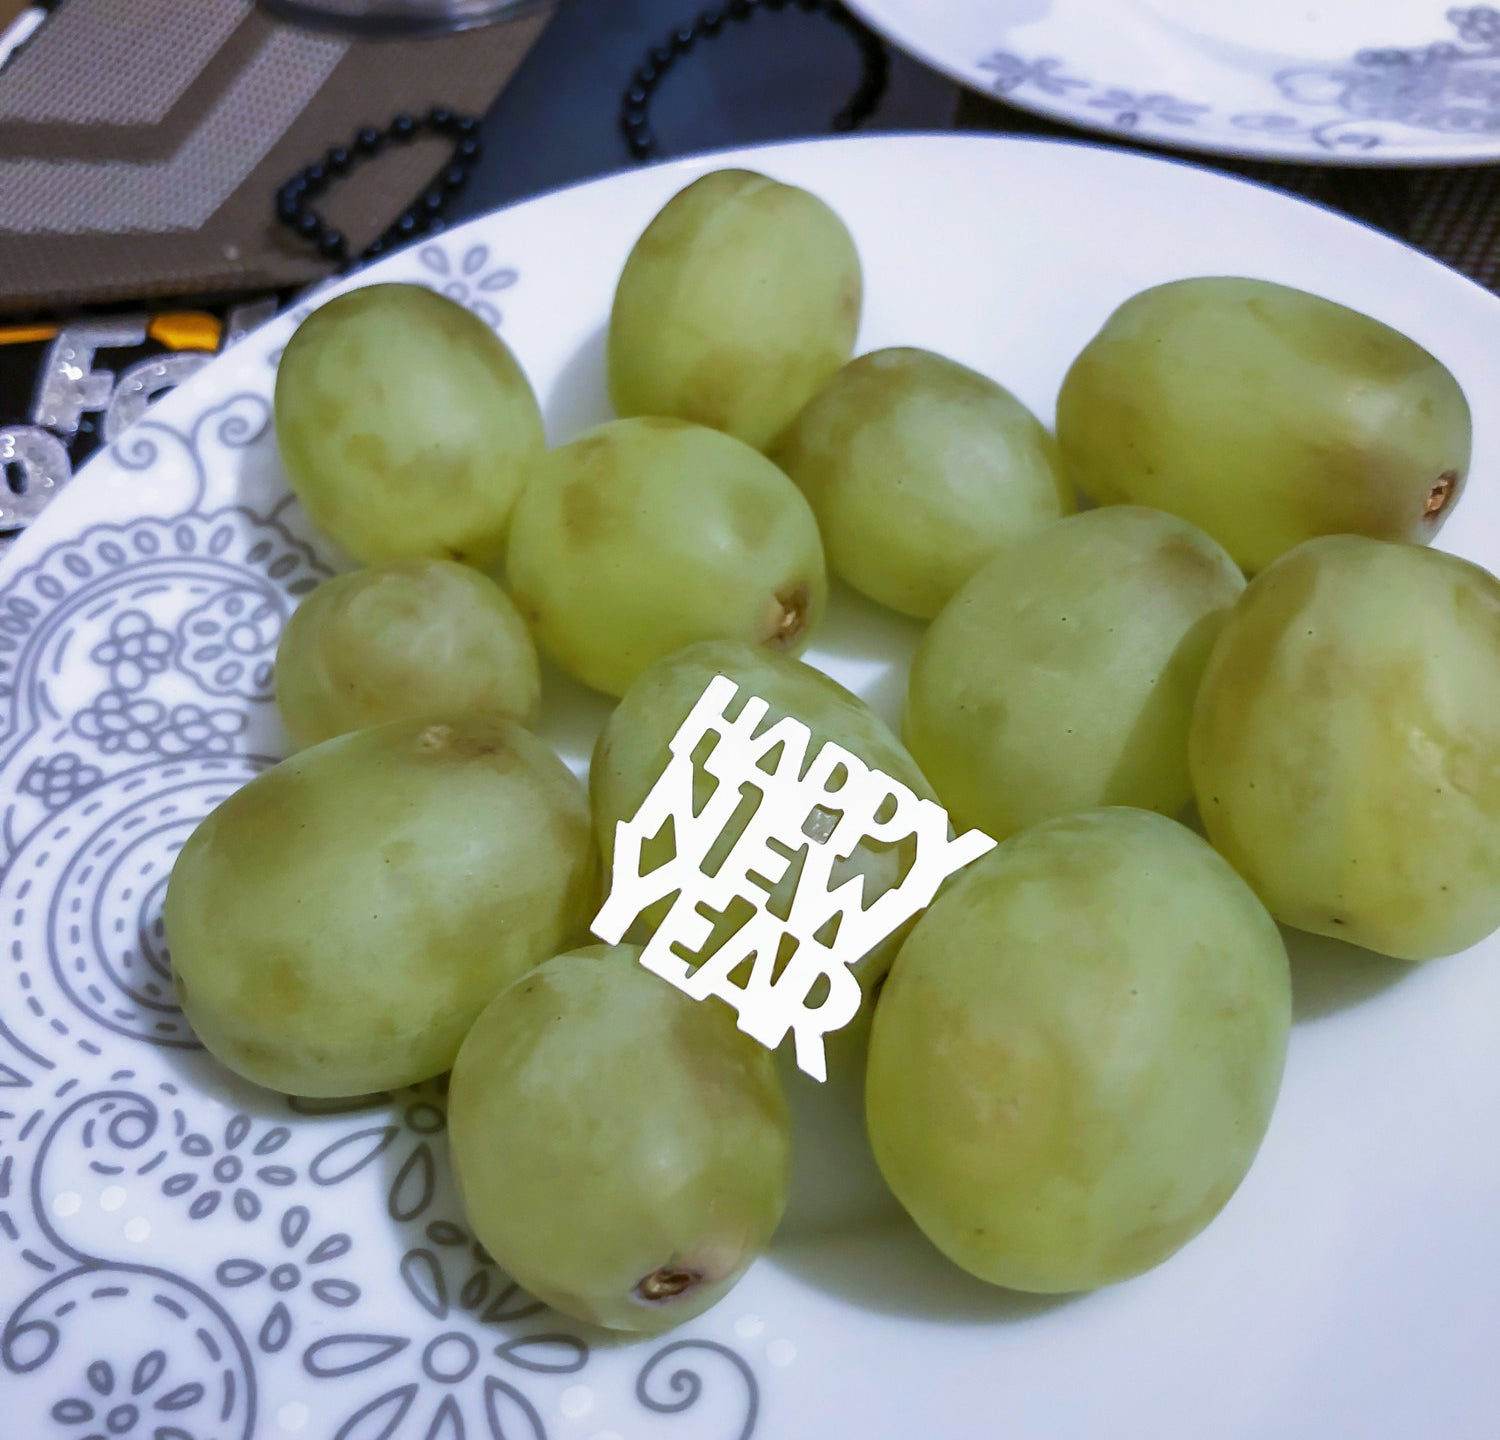 A photo of a dozen green grapes on a plate with a Happy New Year decoration on it